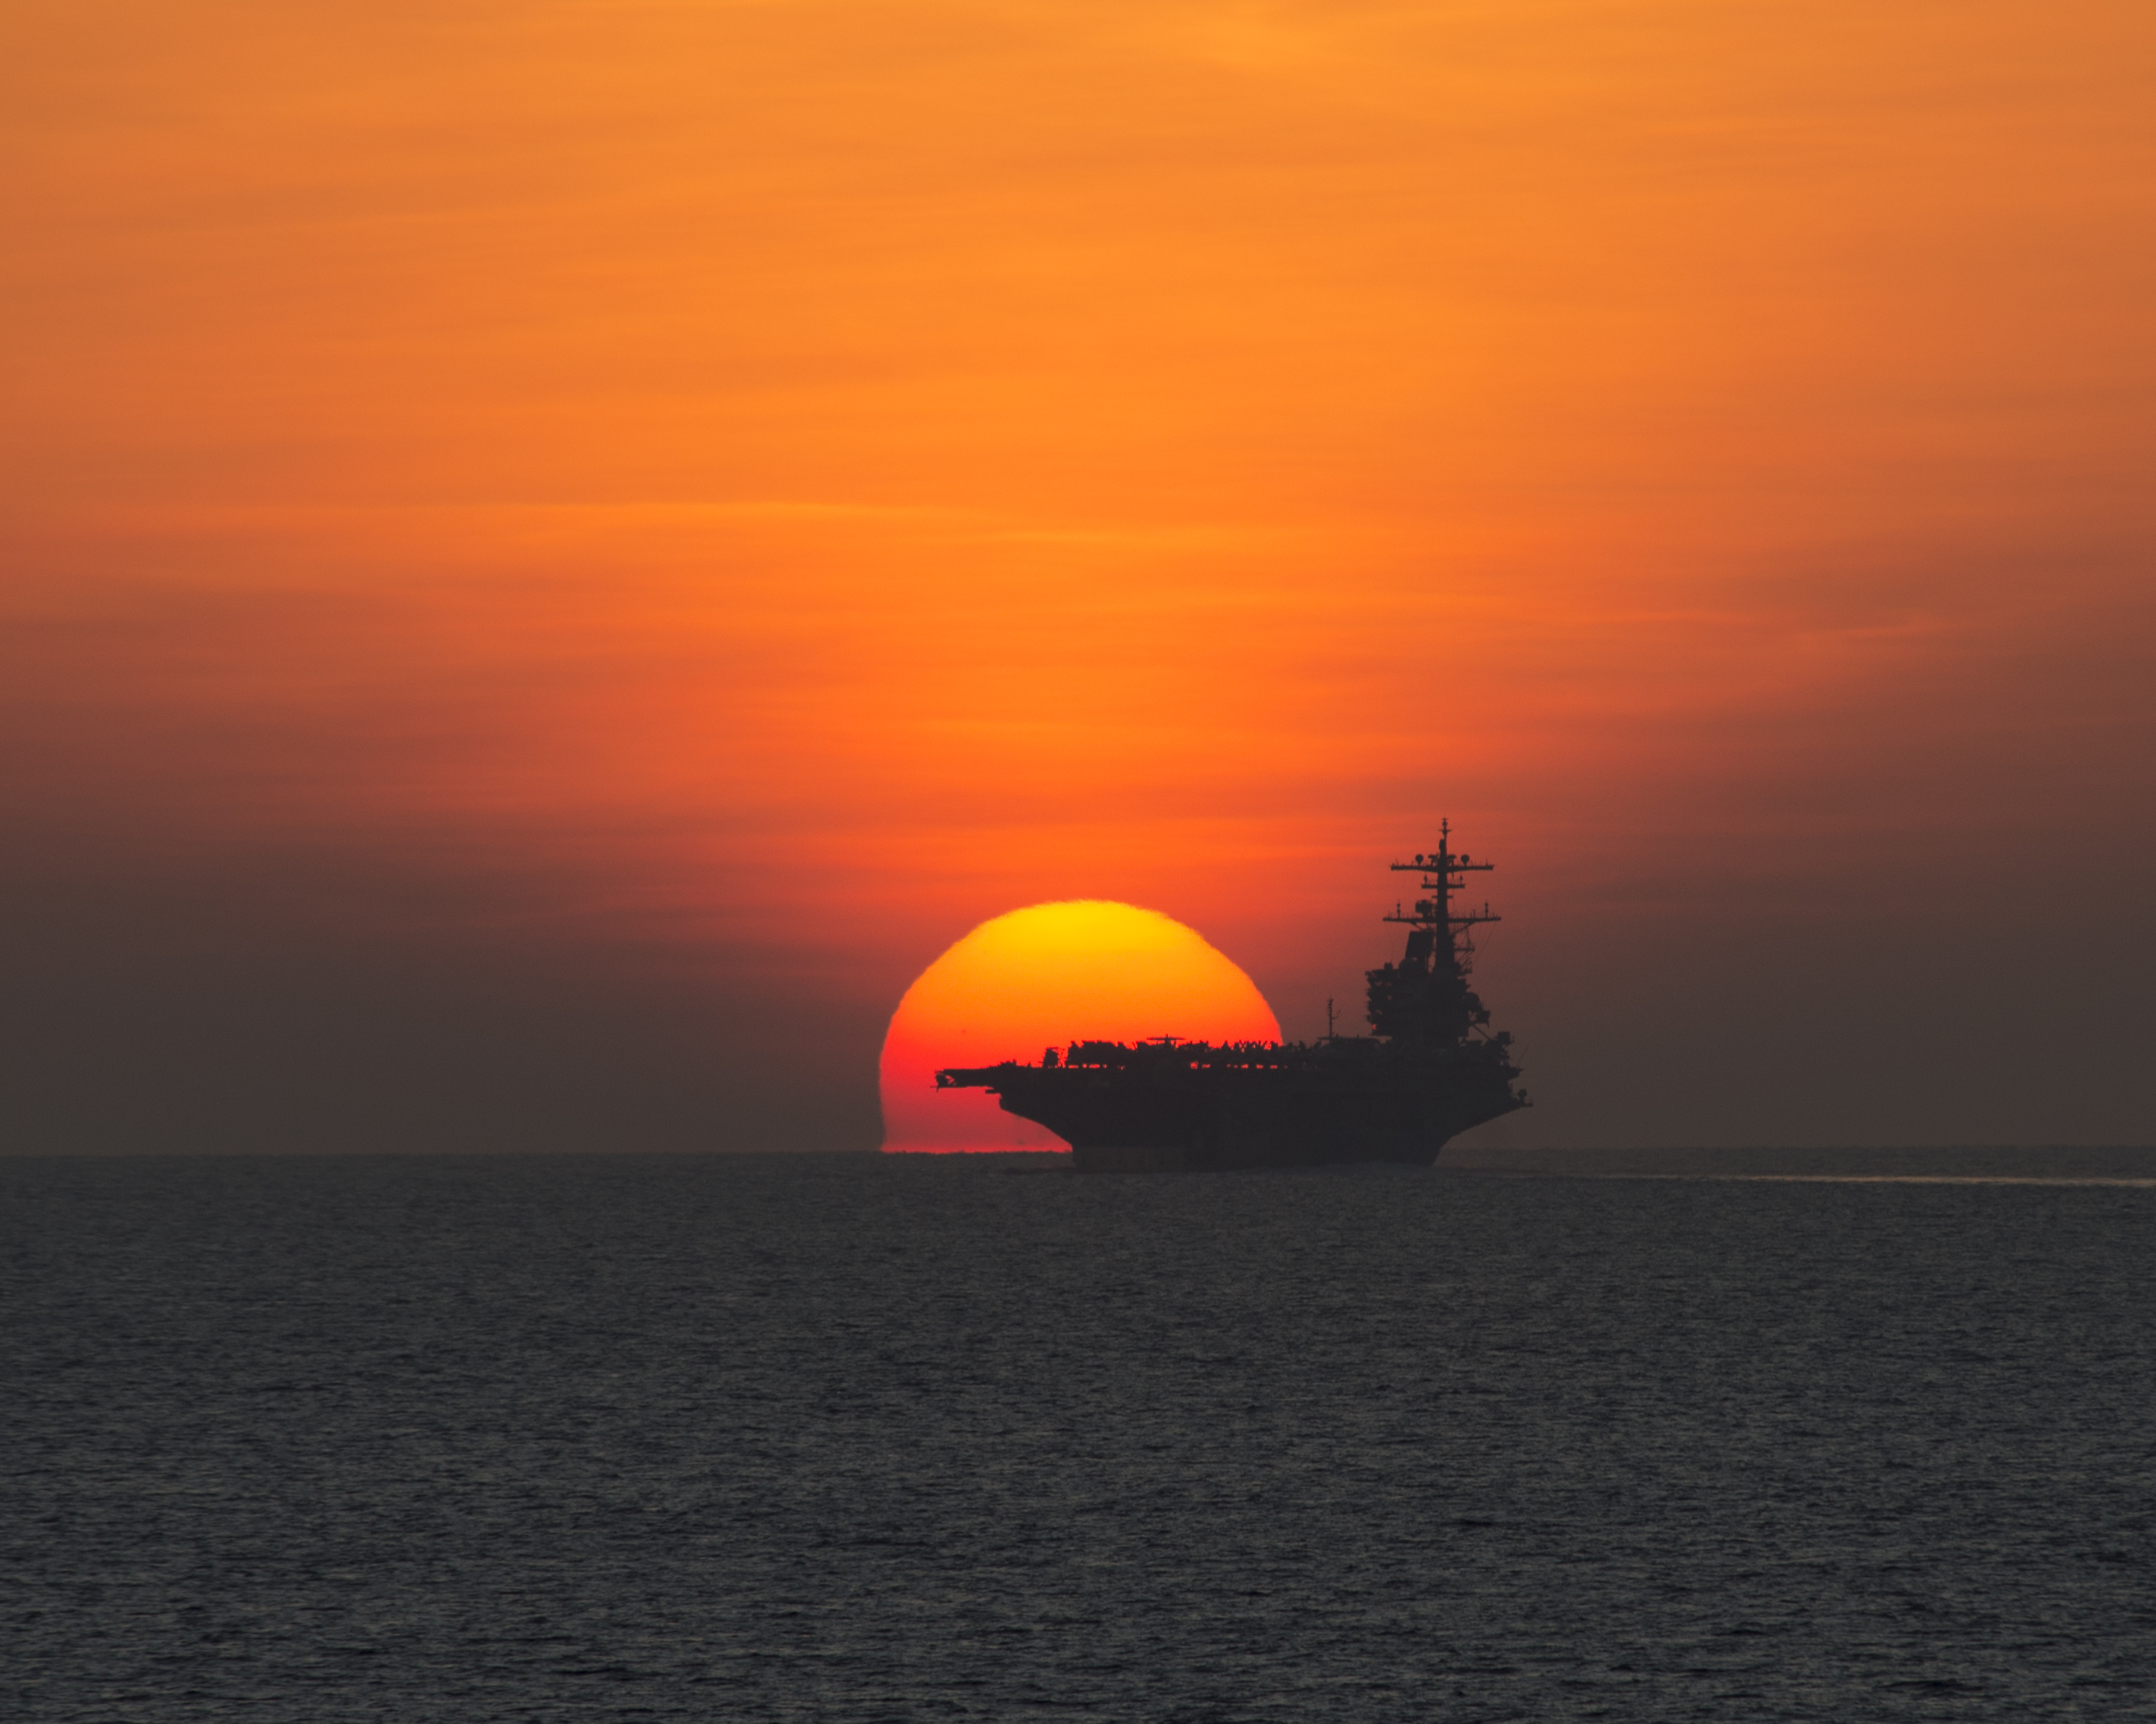 GULF OF ADEN (Oct. 23, 2014) The aircraft carrier USS George H.W. Bush (CVN 77) transits the Gulf of Aden. The George H.W. Bush Carrier Strike Group is returning to Naval Station Norfolk after supporting maritime security operations, strike operations in Iraq and Syria as directed, and theater security cooperation efforts in the U.S. 5th Fleet area of responsibility. (U.S. Navy photo by Mass Communication Specialist 2nd Class Abe McNatt/Released)